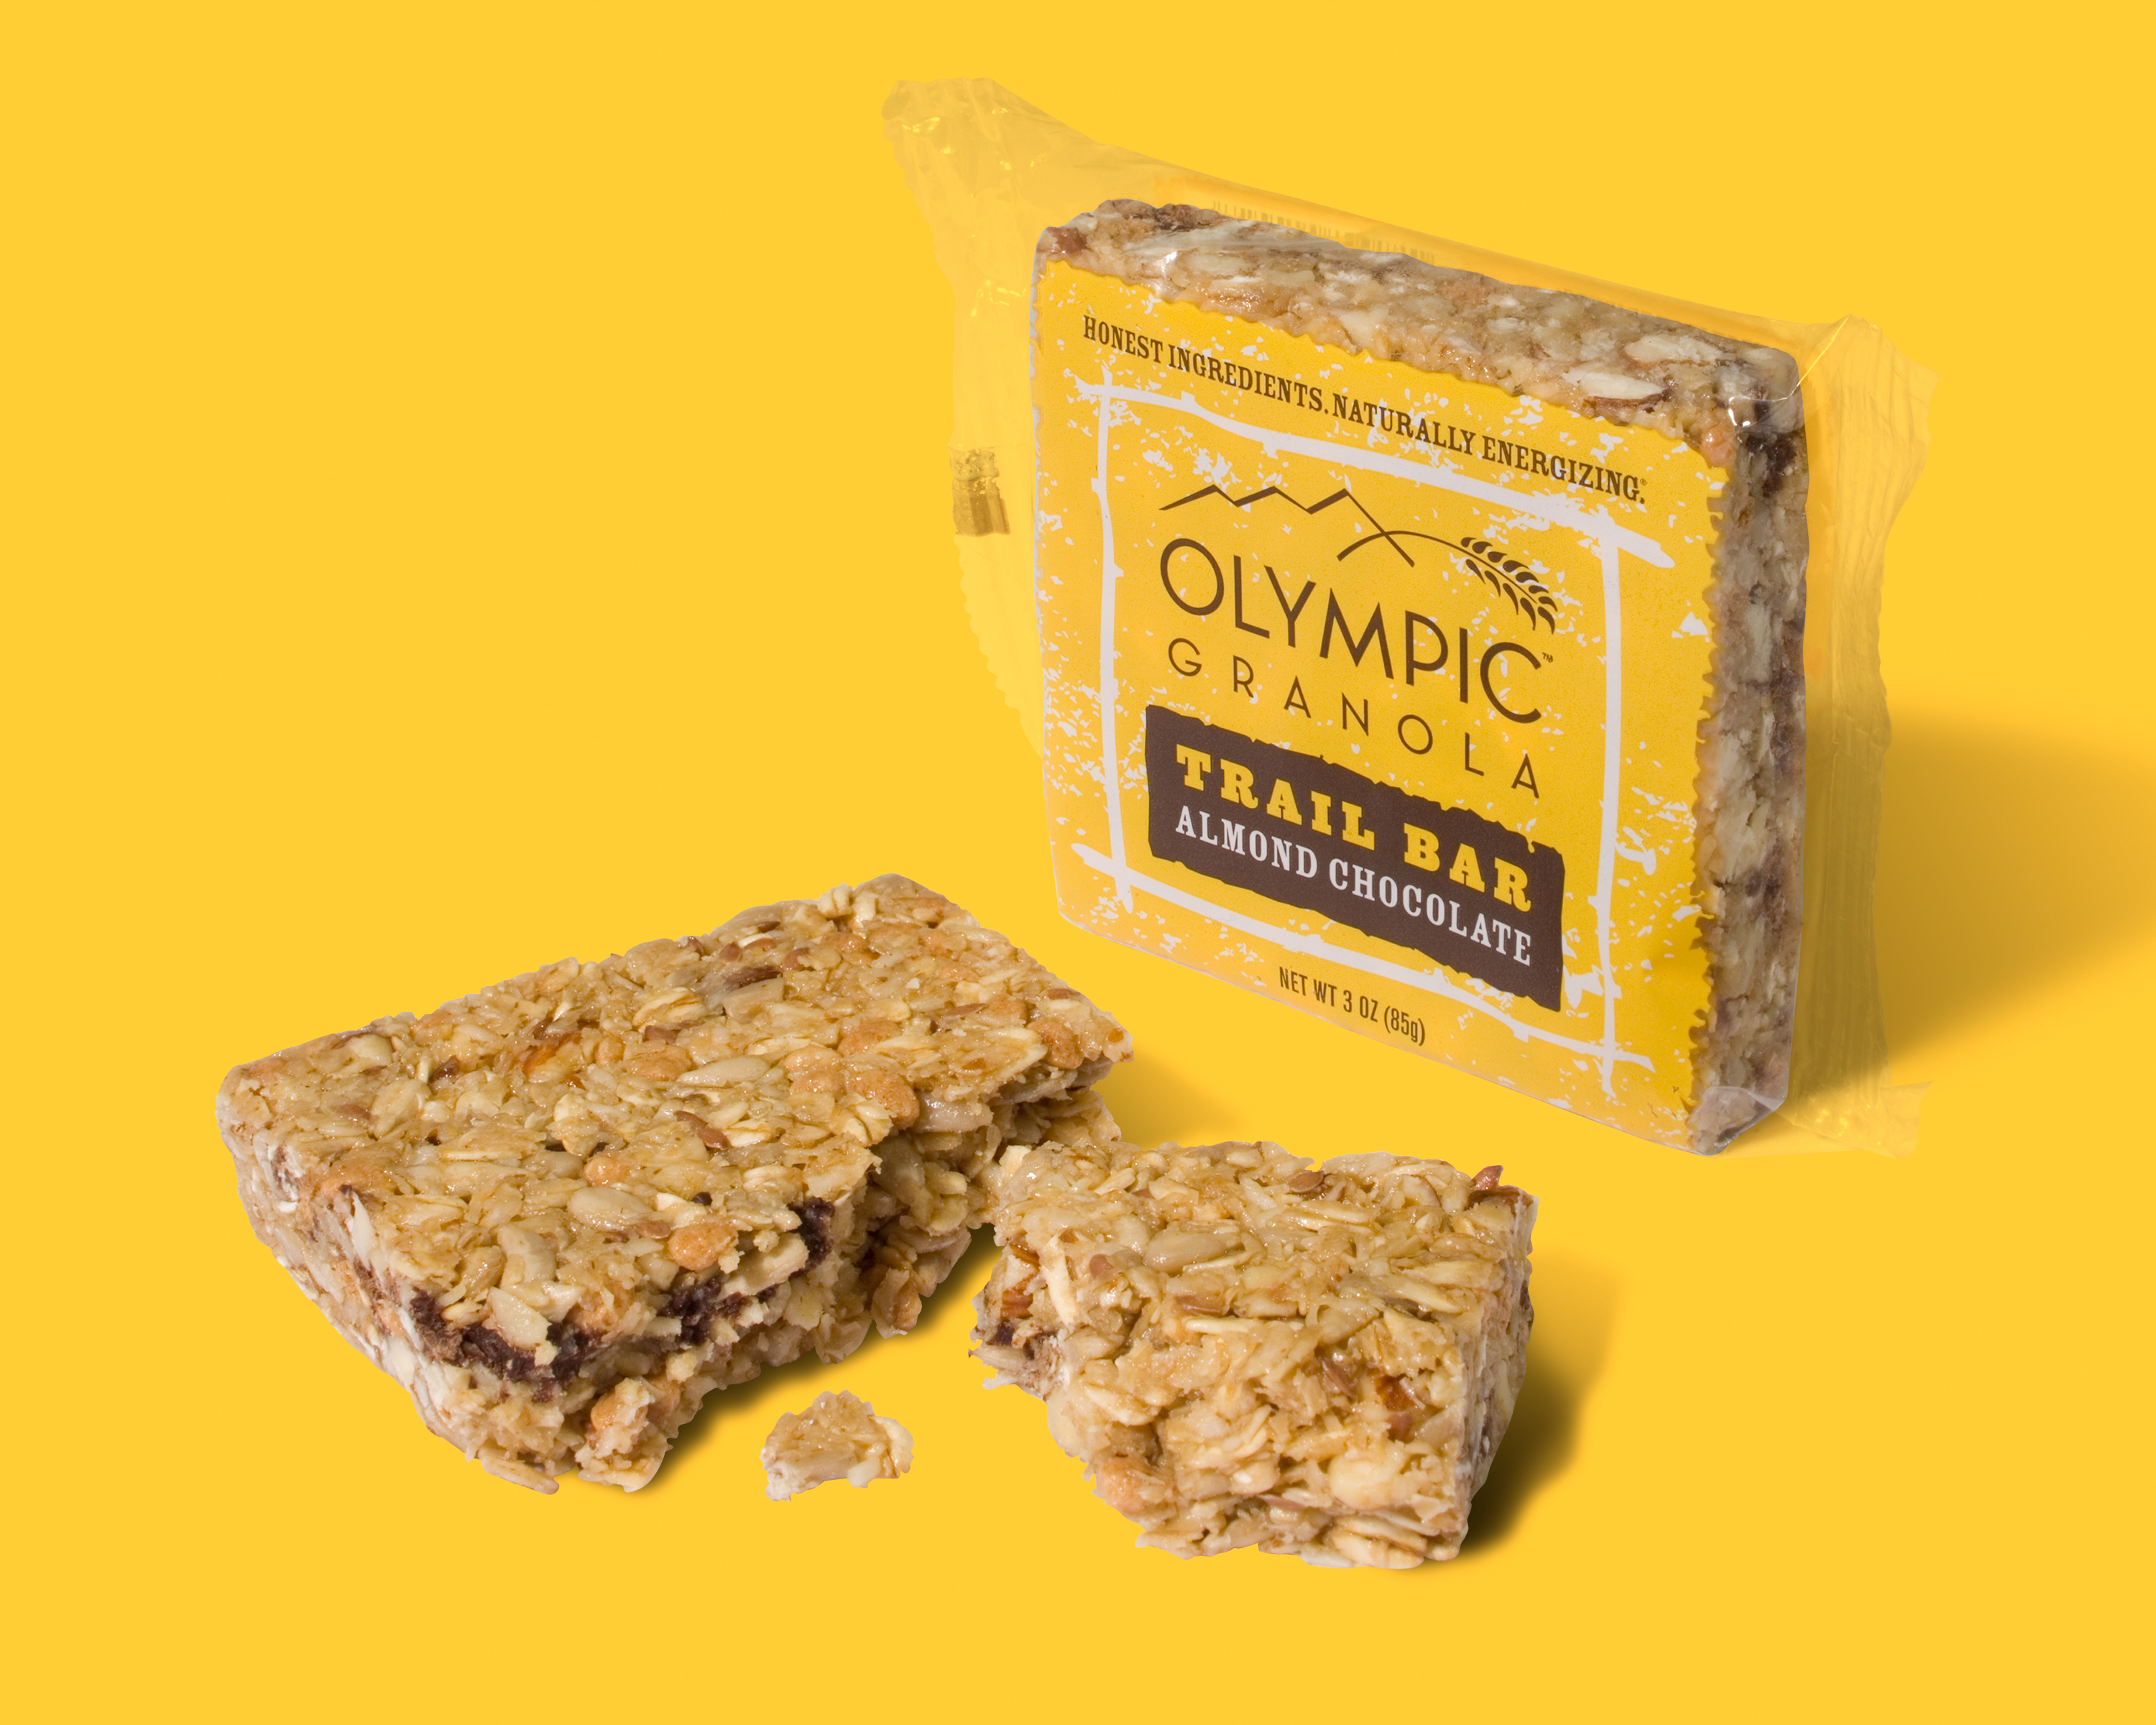 Trail Bar, Olympic Granola